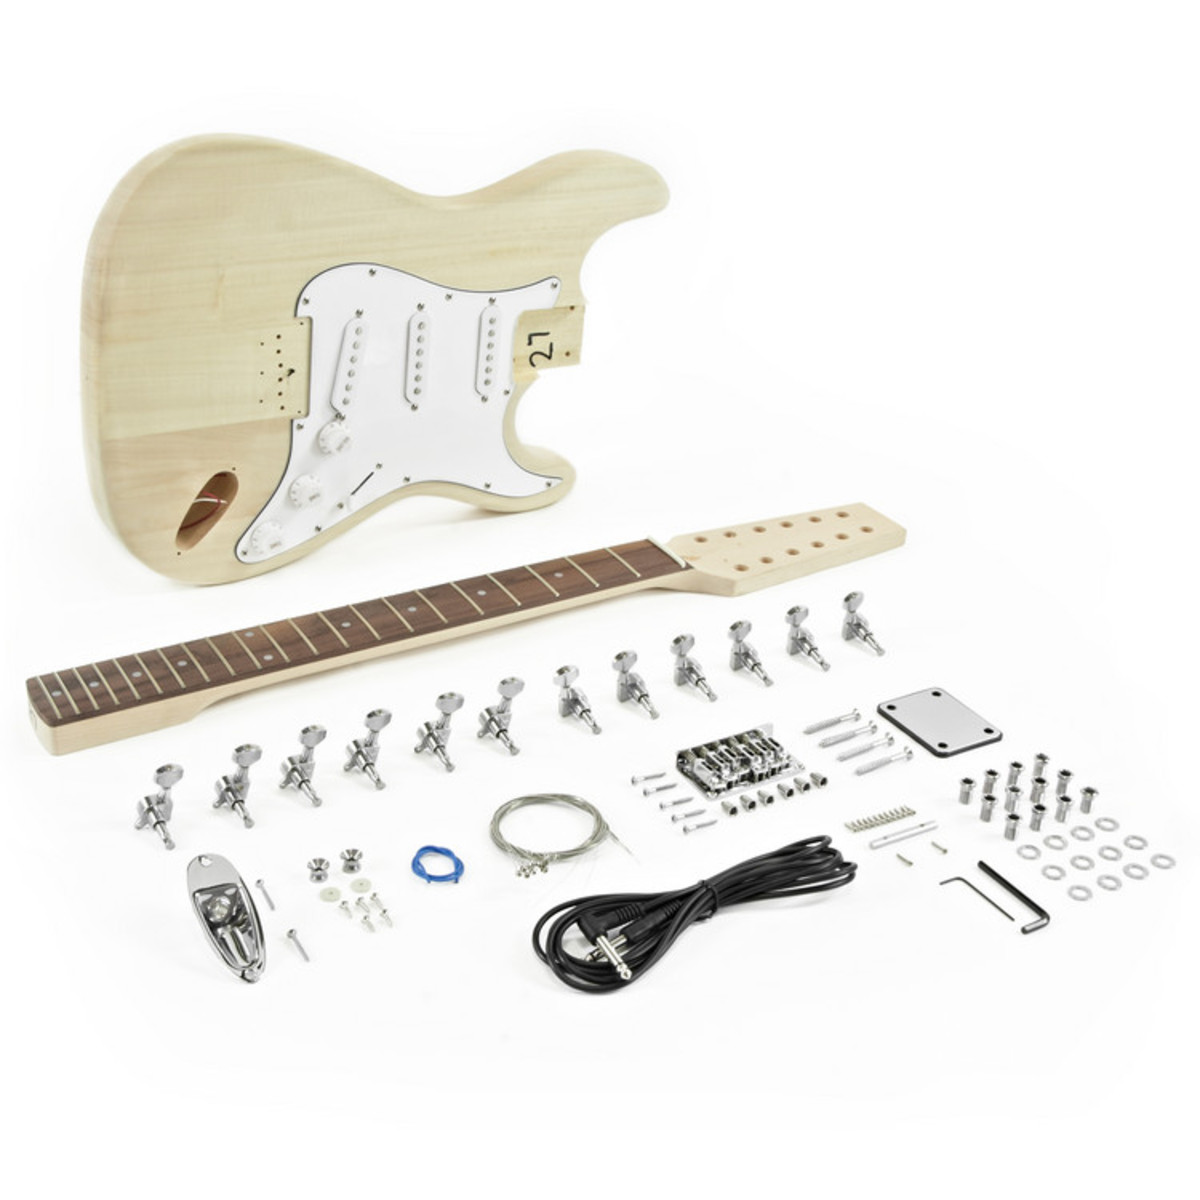 12 String LA Electric Guitar DIY Kit